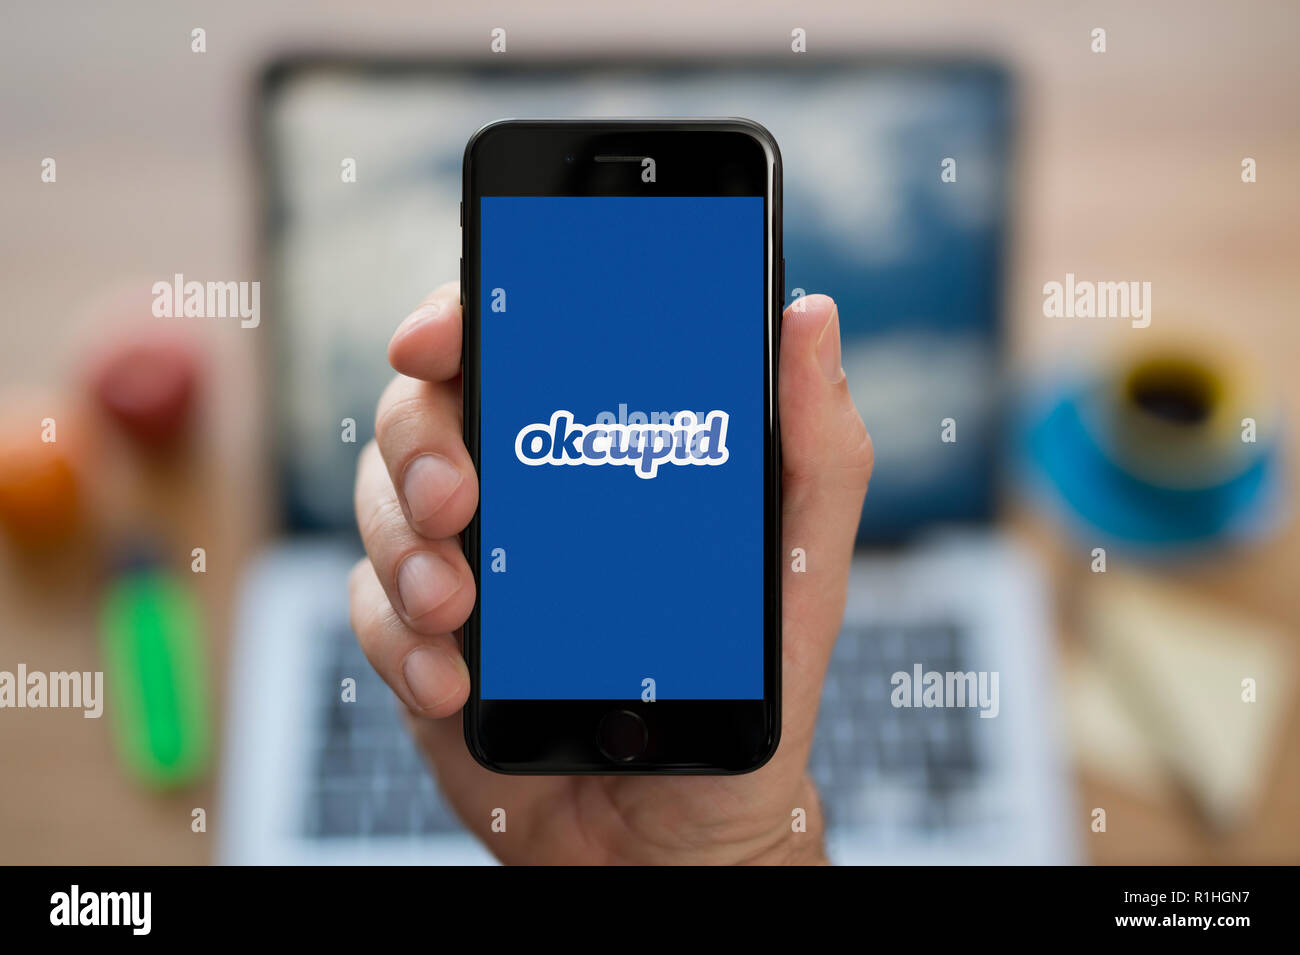 A man looks at his iPhone which displays the OK Cupid logo